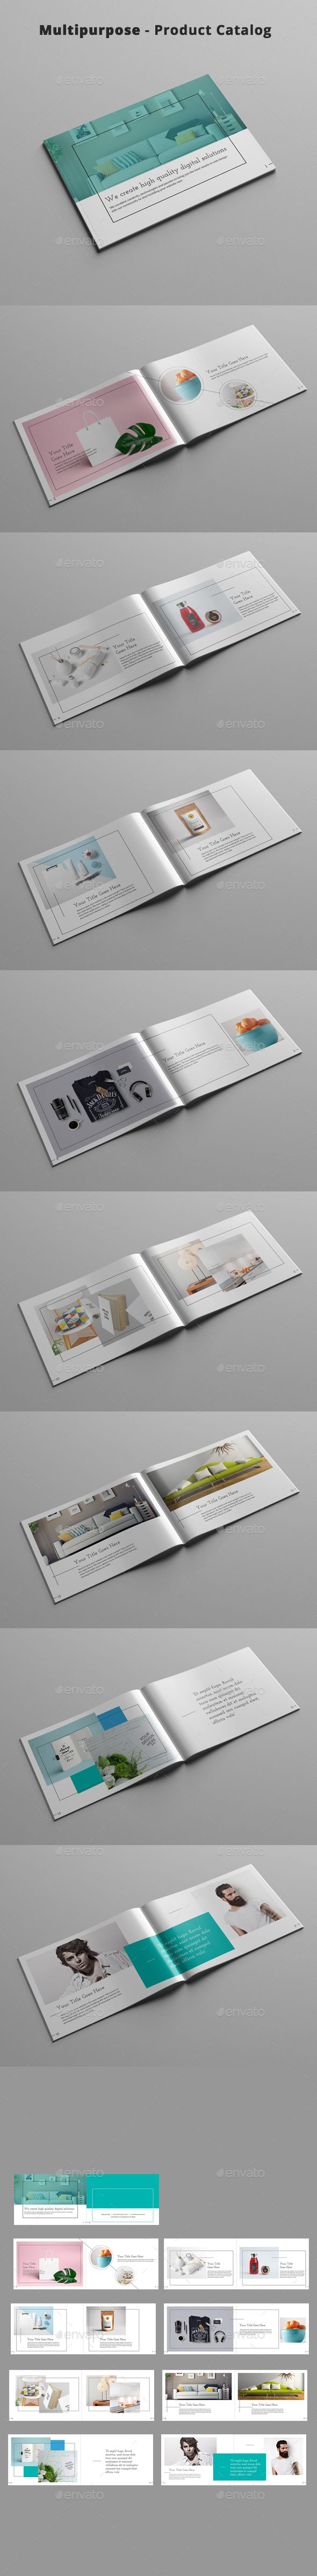 Multipurpose Product Catalog - Catalogs Brochures Download here : https://graphicriver.net/item/multipurpose-product-catalog/19450067?s_rank=60&ref=Al-fatih